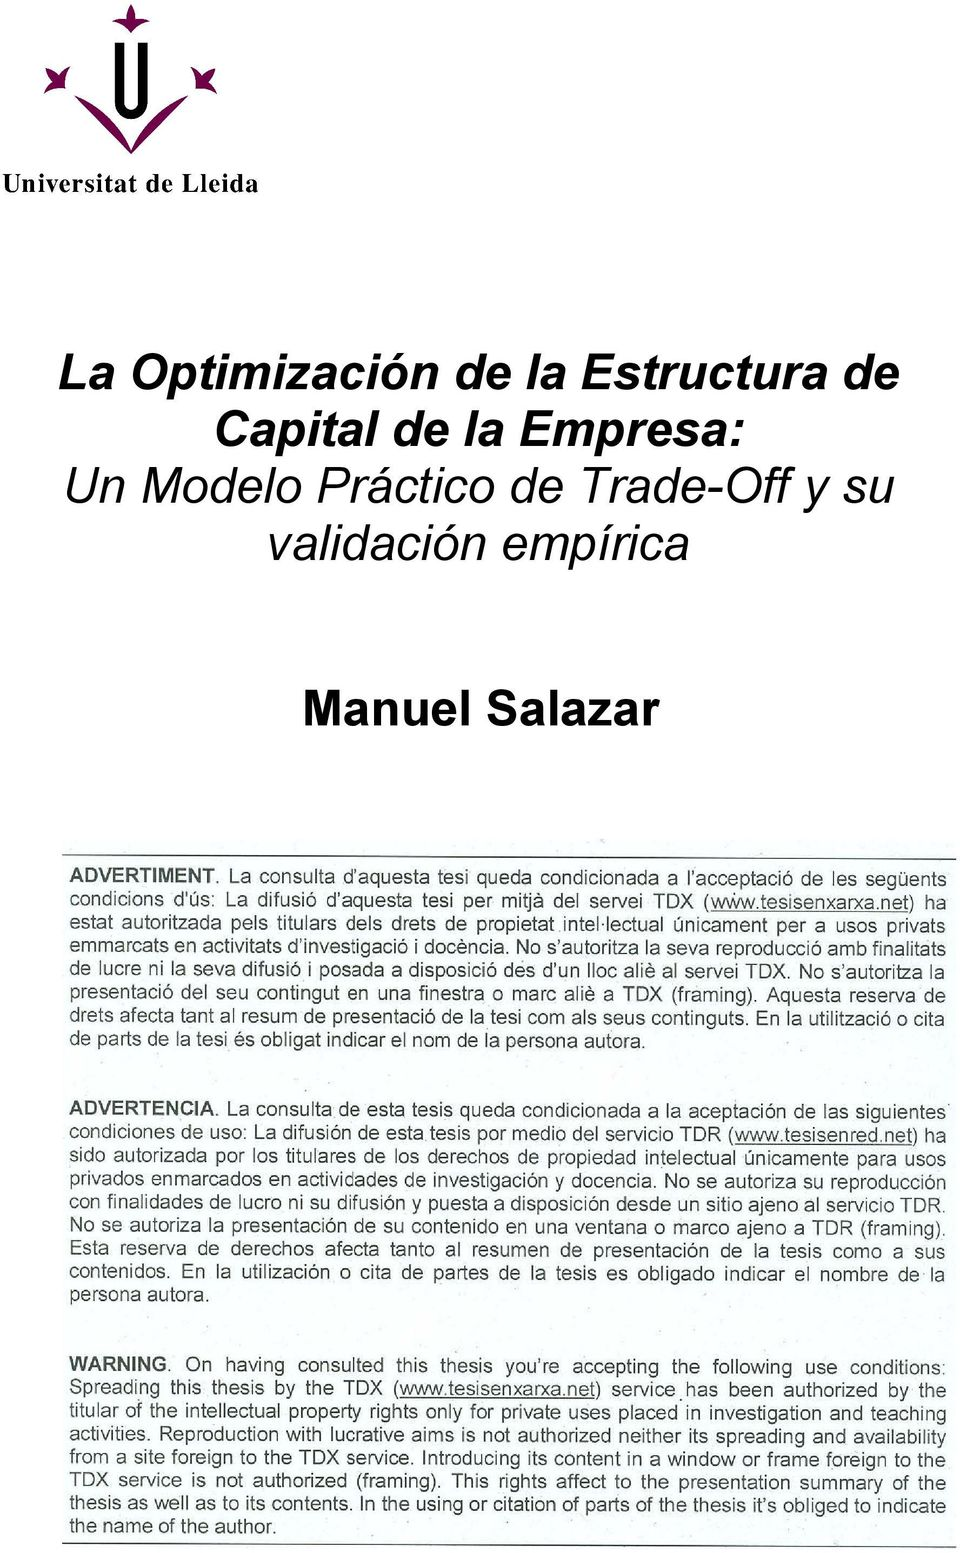 Modelo Práctico de Trade-Off y